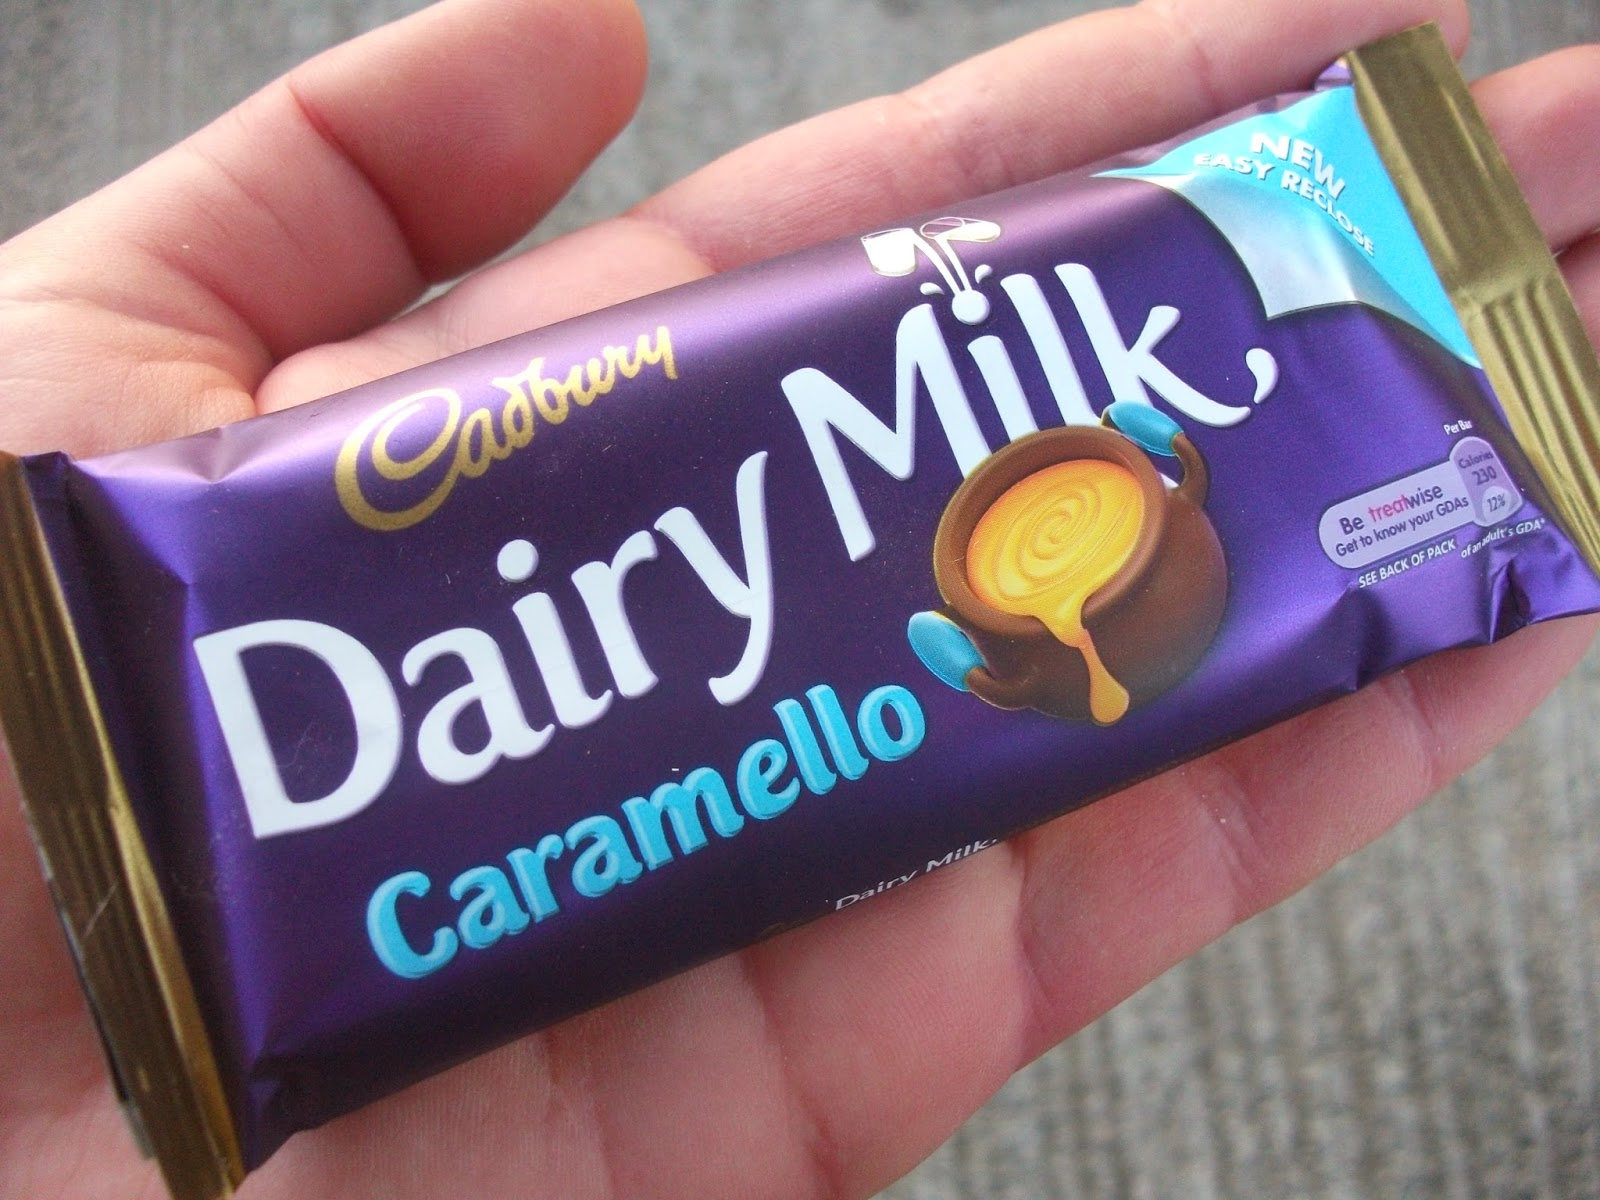 Caramello Candy Bar Wrapper